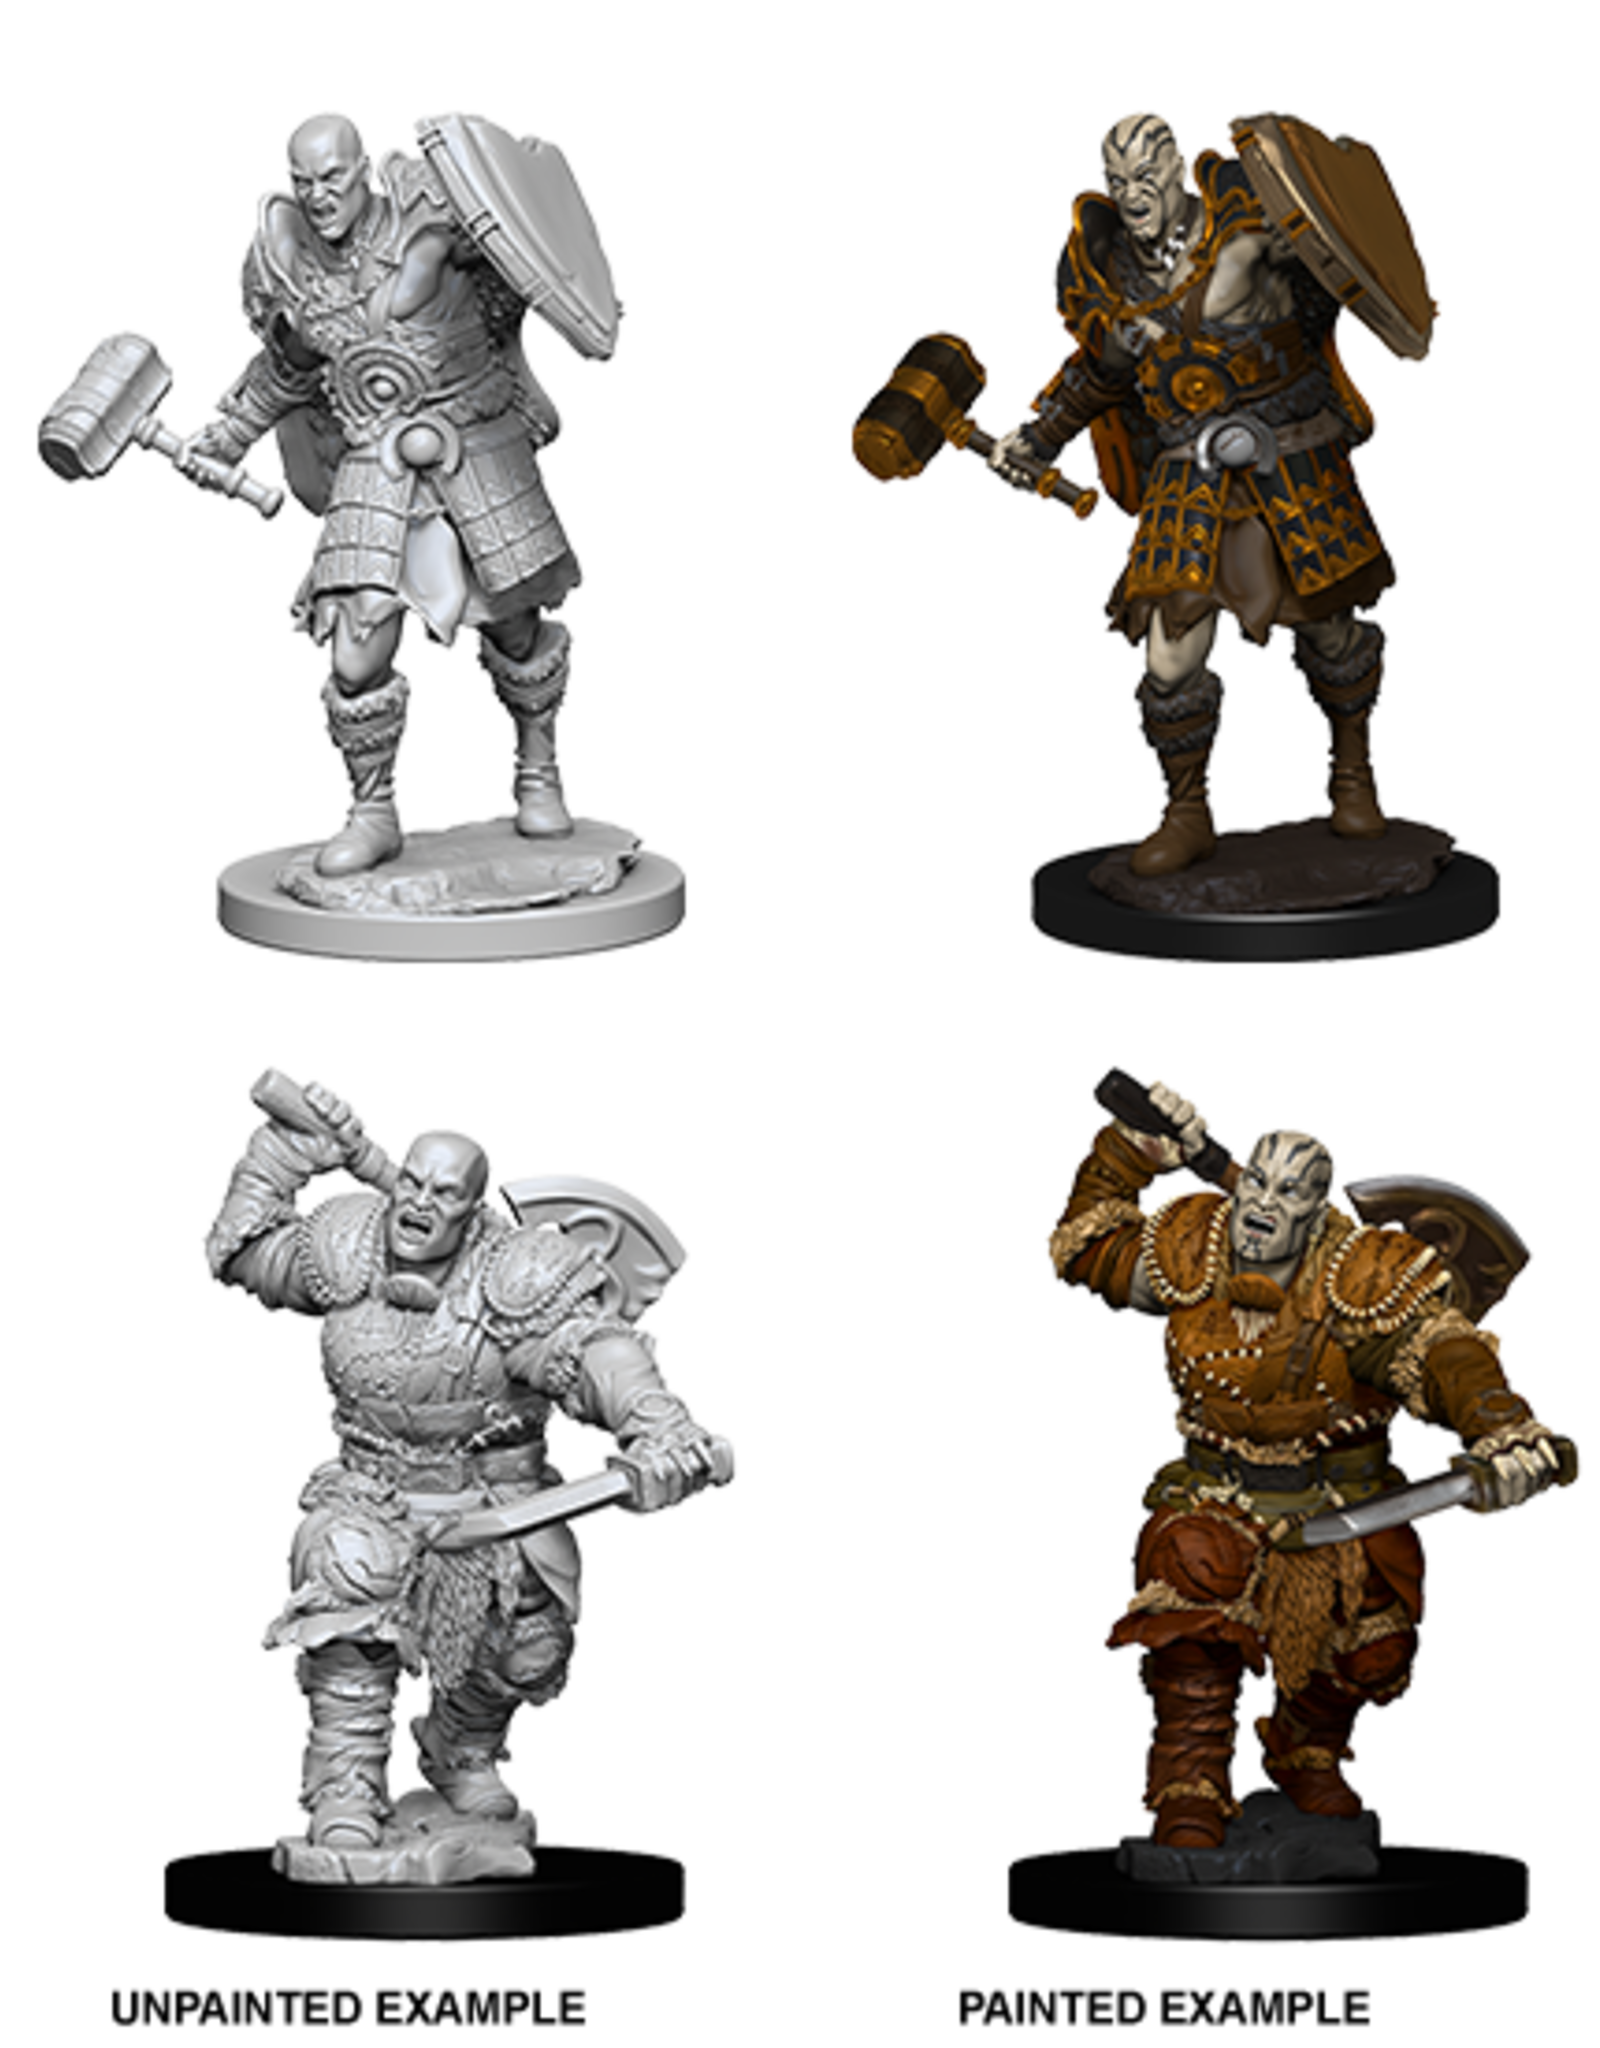 Nolzur's Marvelous Miniatures D&D D&D NMU - Male Goliath Fighter